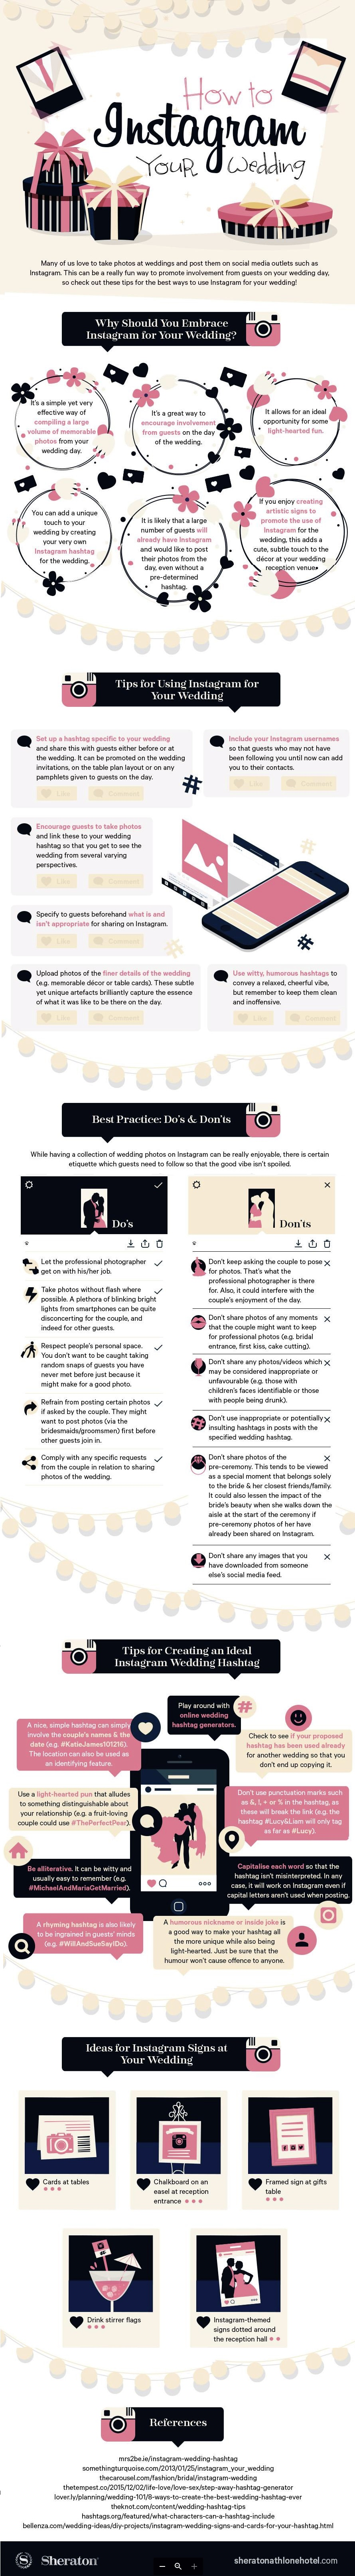 How to Instagram Your Wedding [Infographic] | Social Media Today